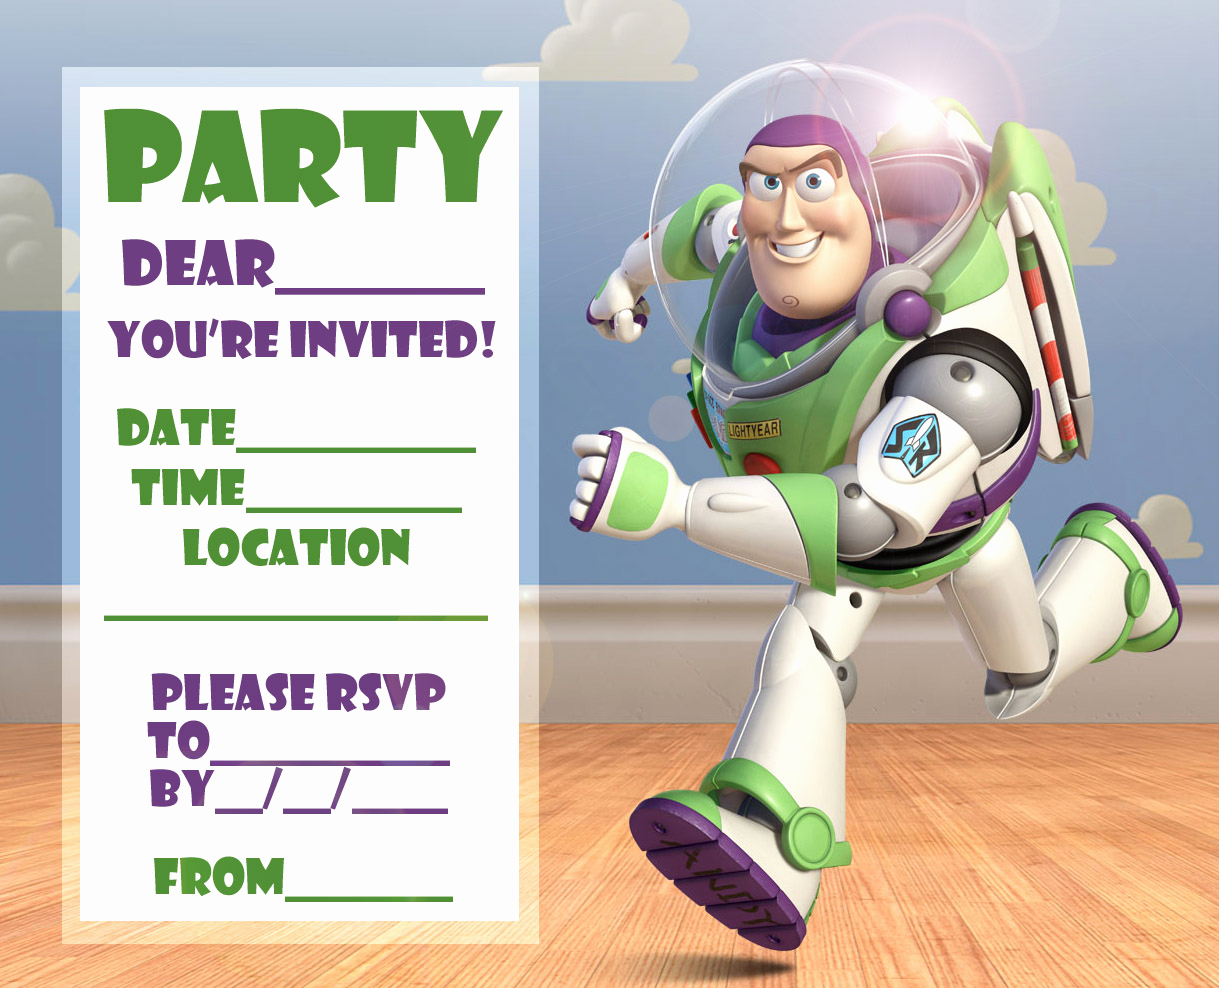 Toy Story Invitation Template Free Fresh Free toy Story Woody and Buzz Lightyear Party Invitation